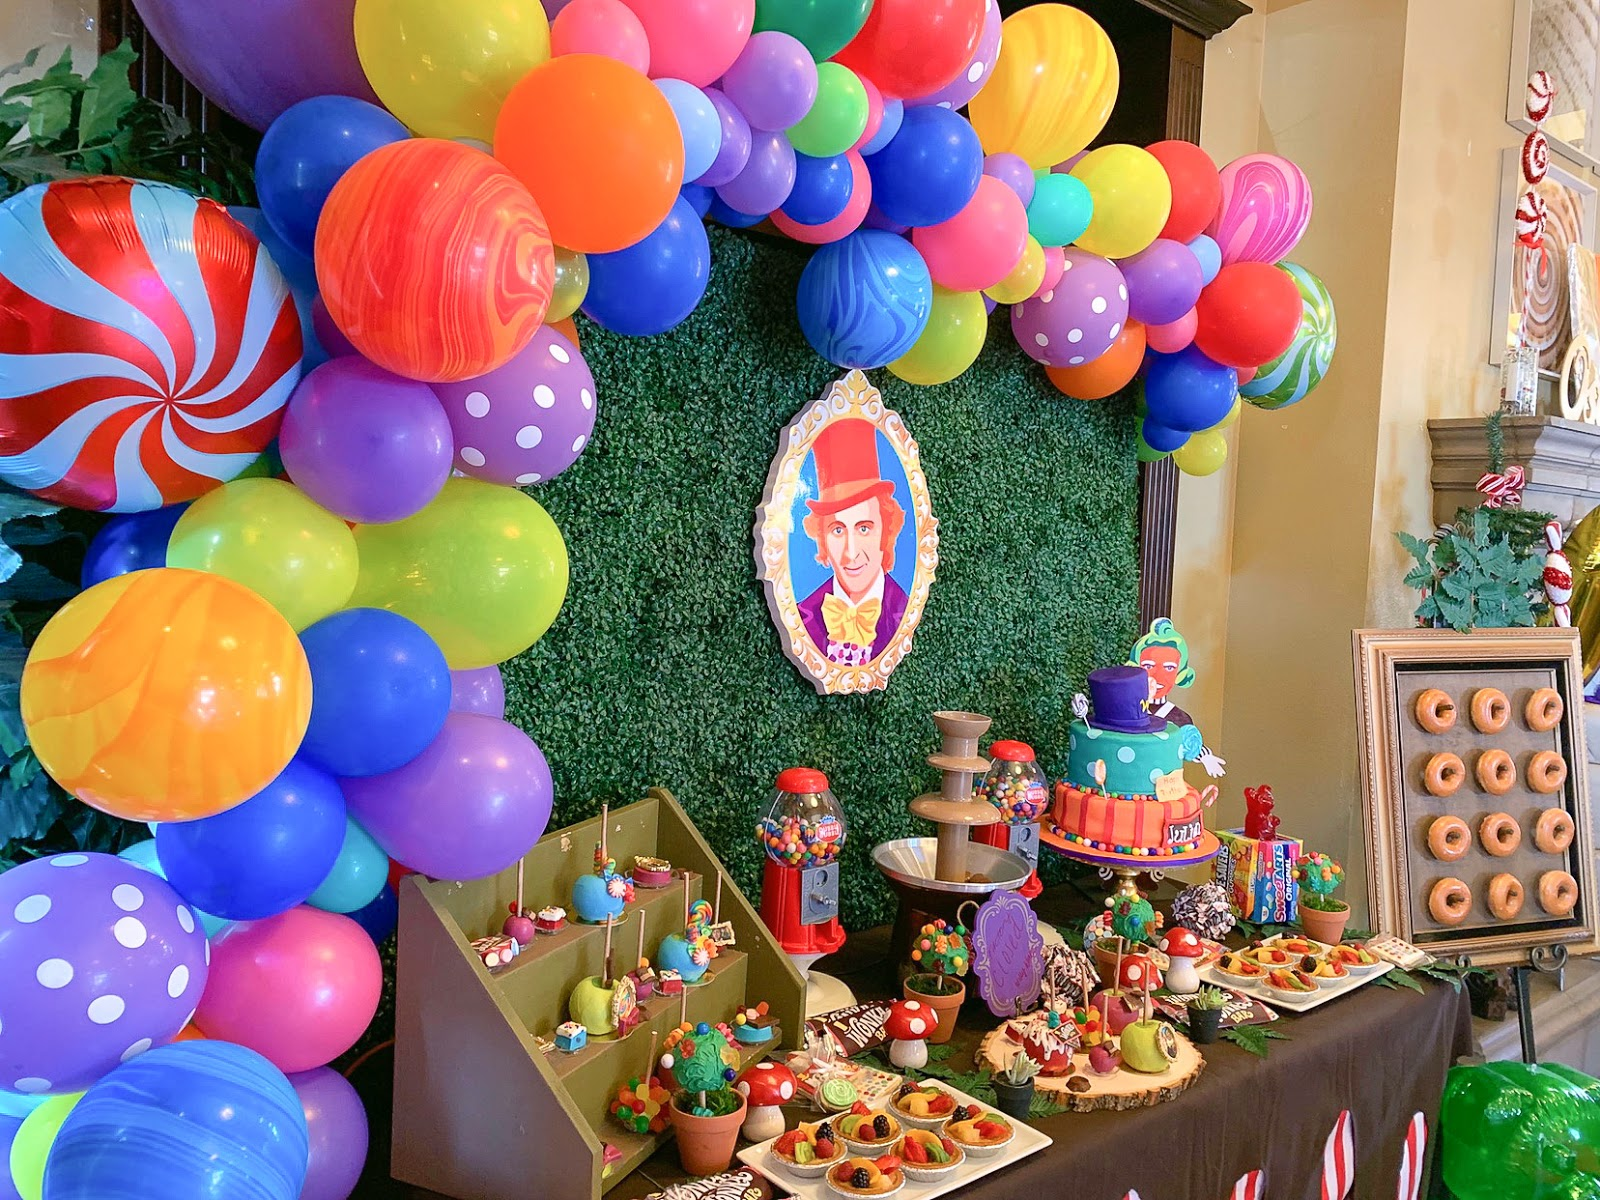 candyland balloons, candy themed party